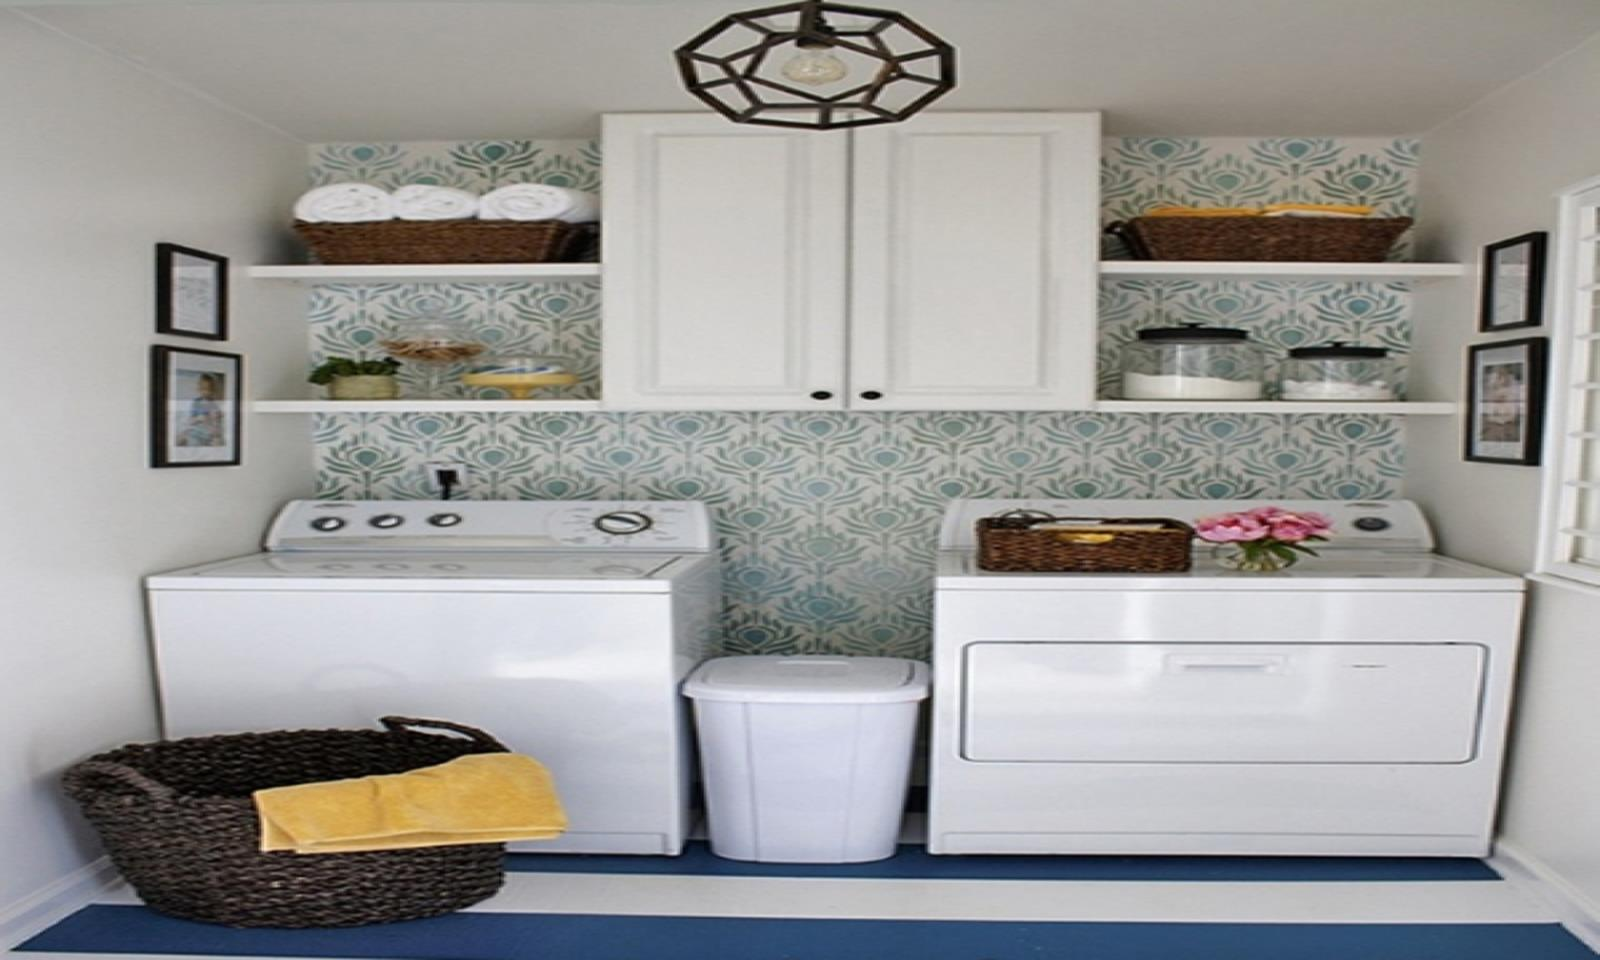 DIY Small Laundry Room Makeovers On a Budget 35